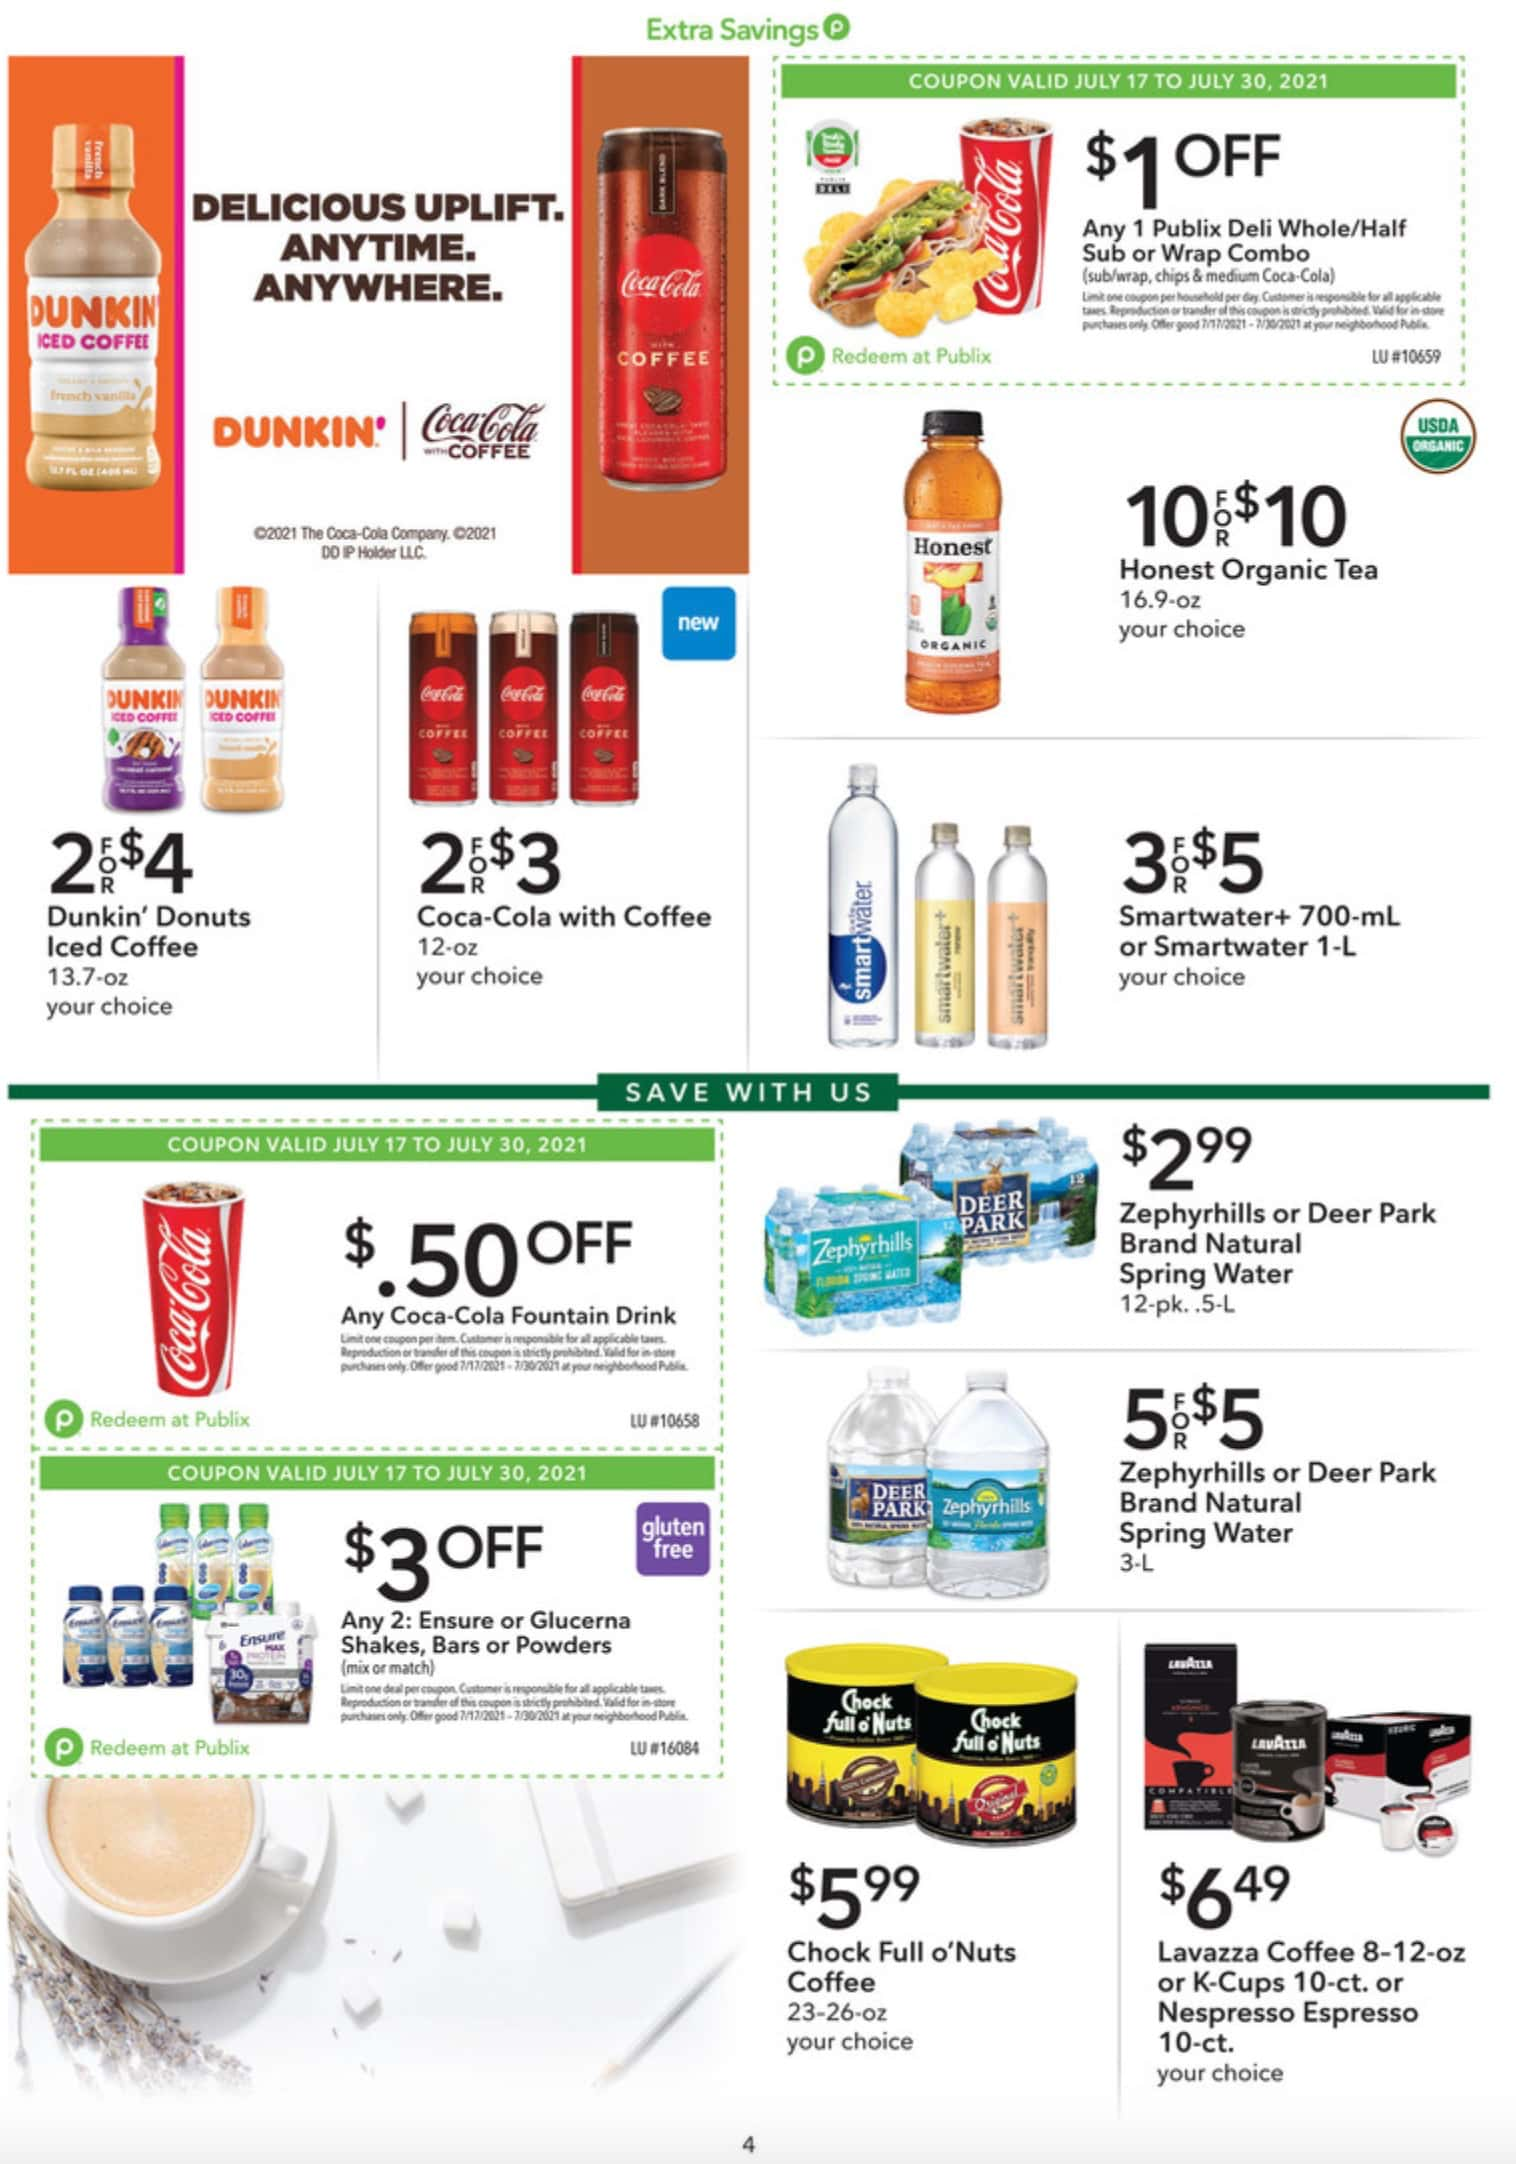 publix_weekly_ad_071721_04